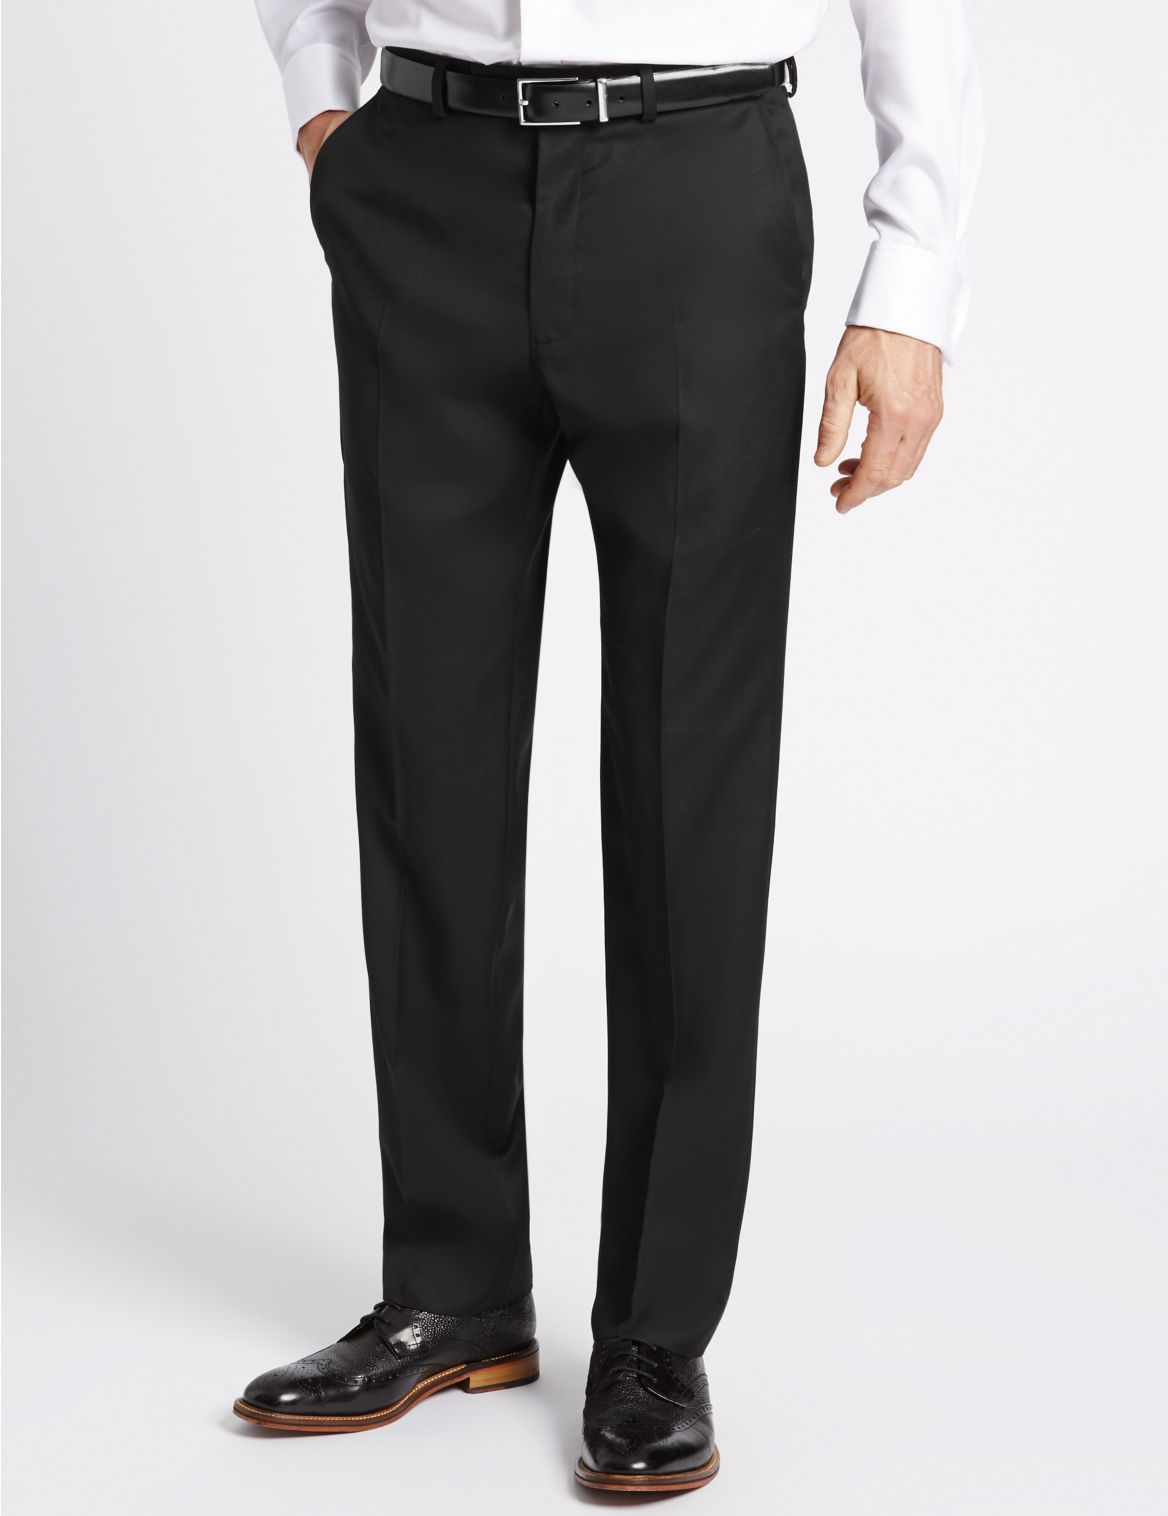 Black Tailored Fit Wool Trousers black